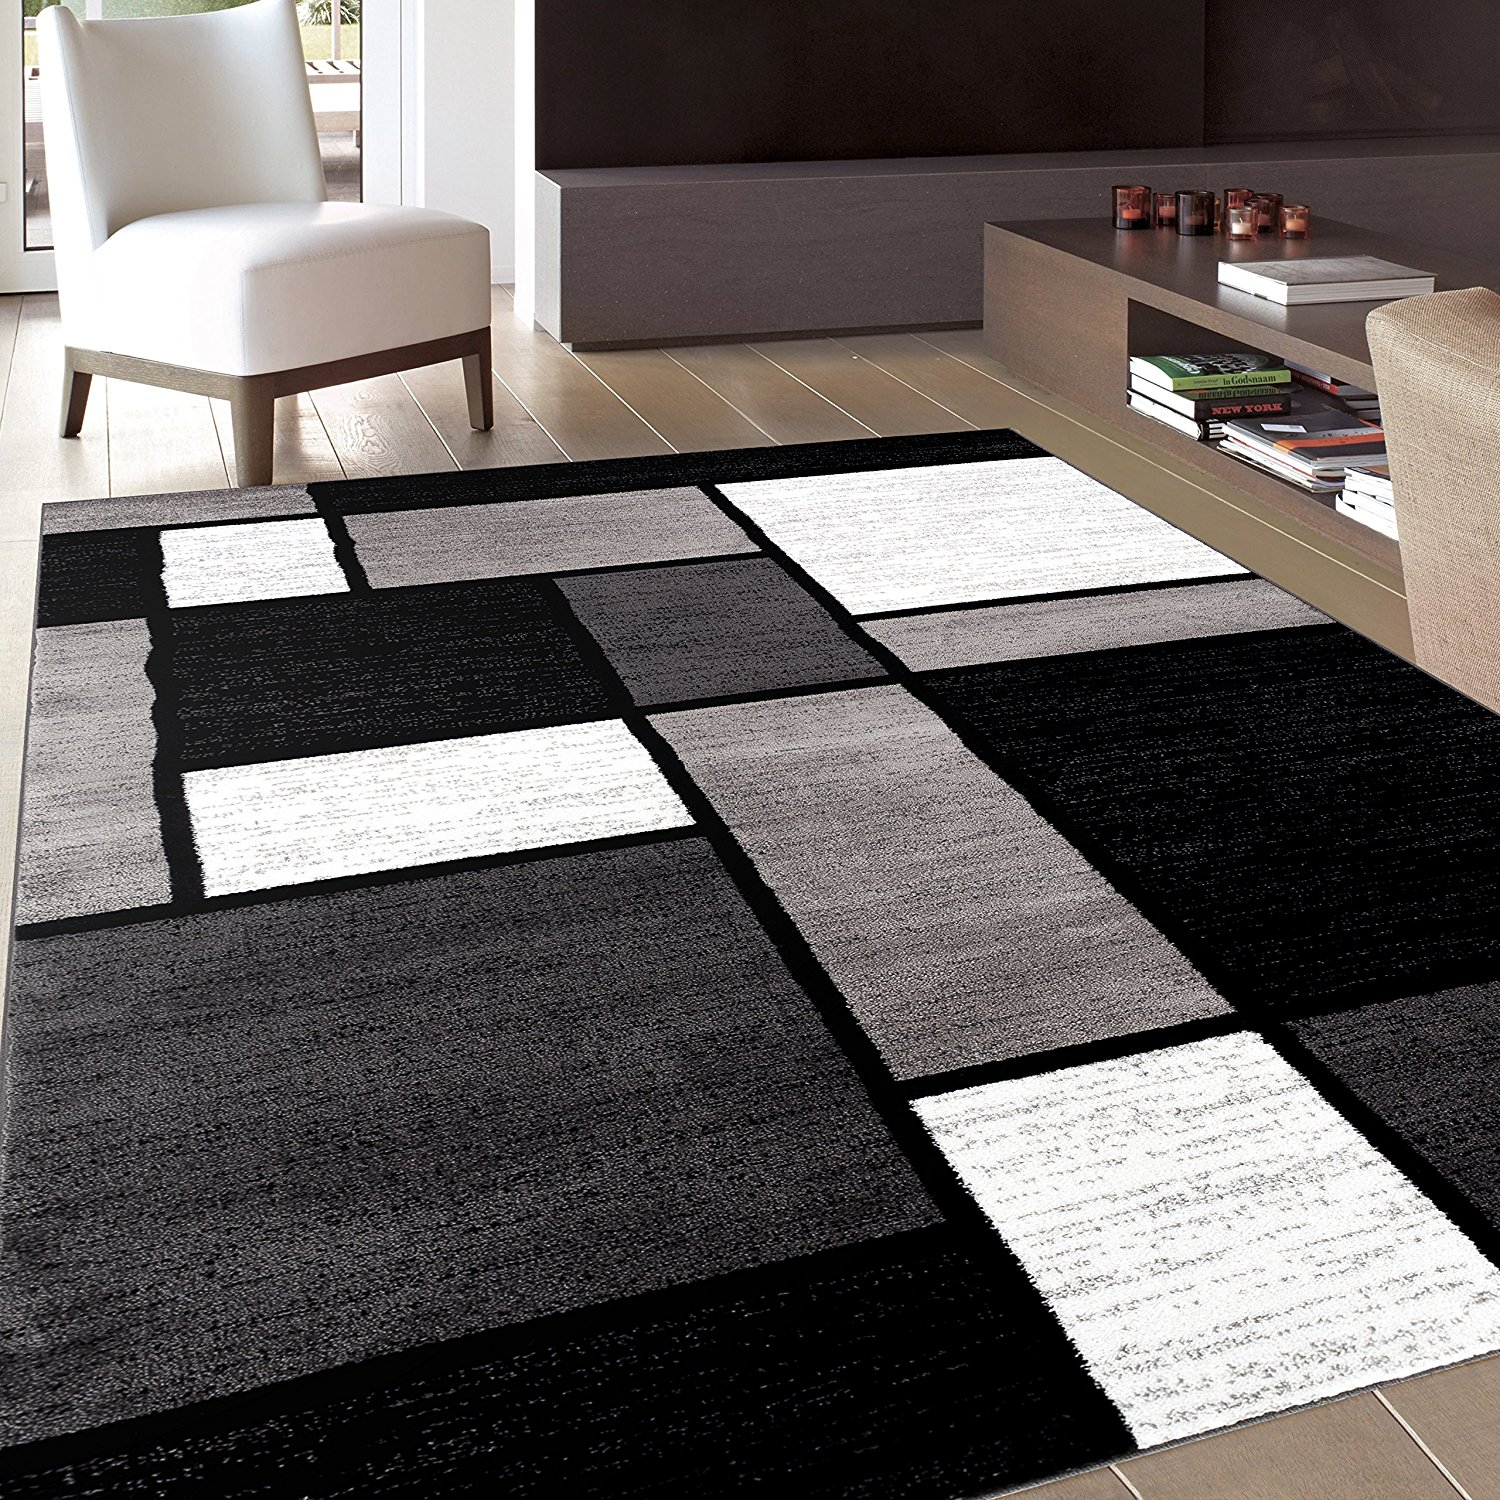 contemporary area rugs black and white area rugs amazon.com: rug decor contemporary modern boxes area OOQVKEL